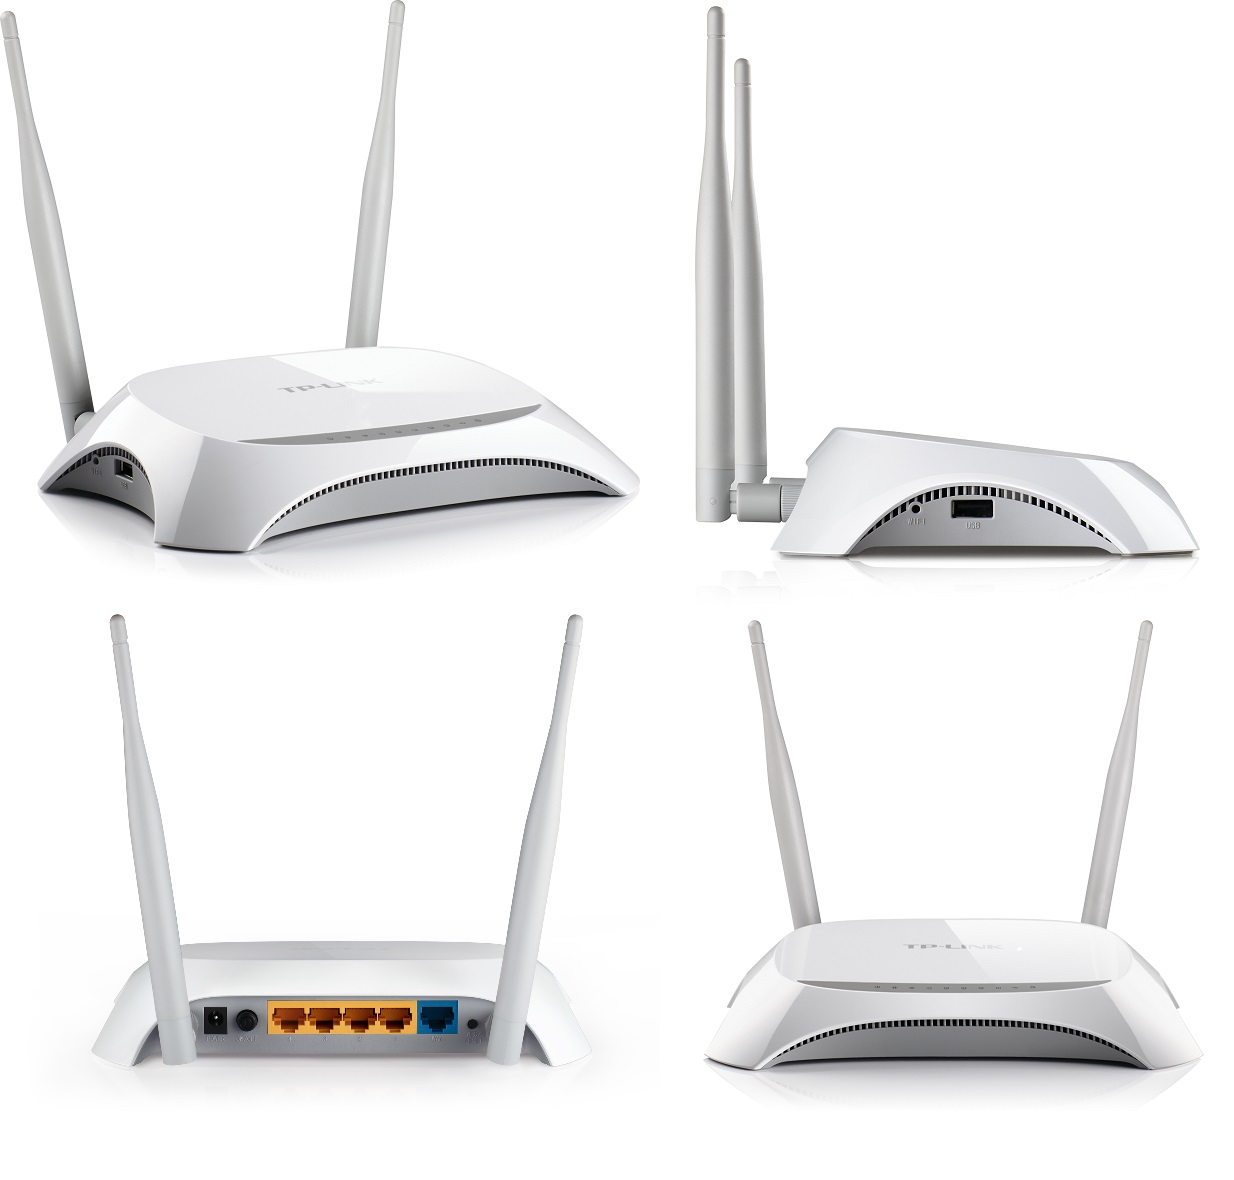 Gold One Tp Link Tl Mr3420 300m 3g 4g Wireless N Router Mr3020 Portable